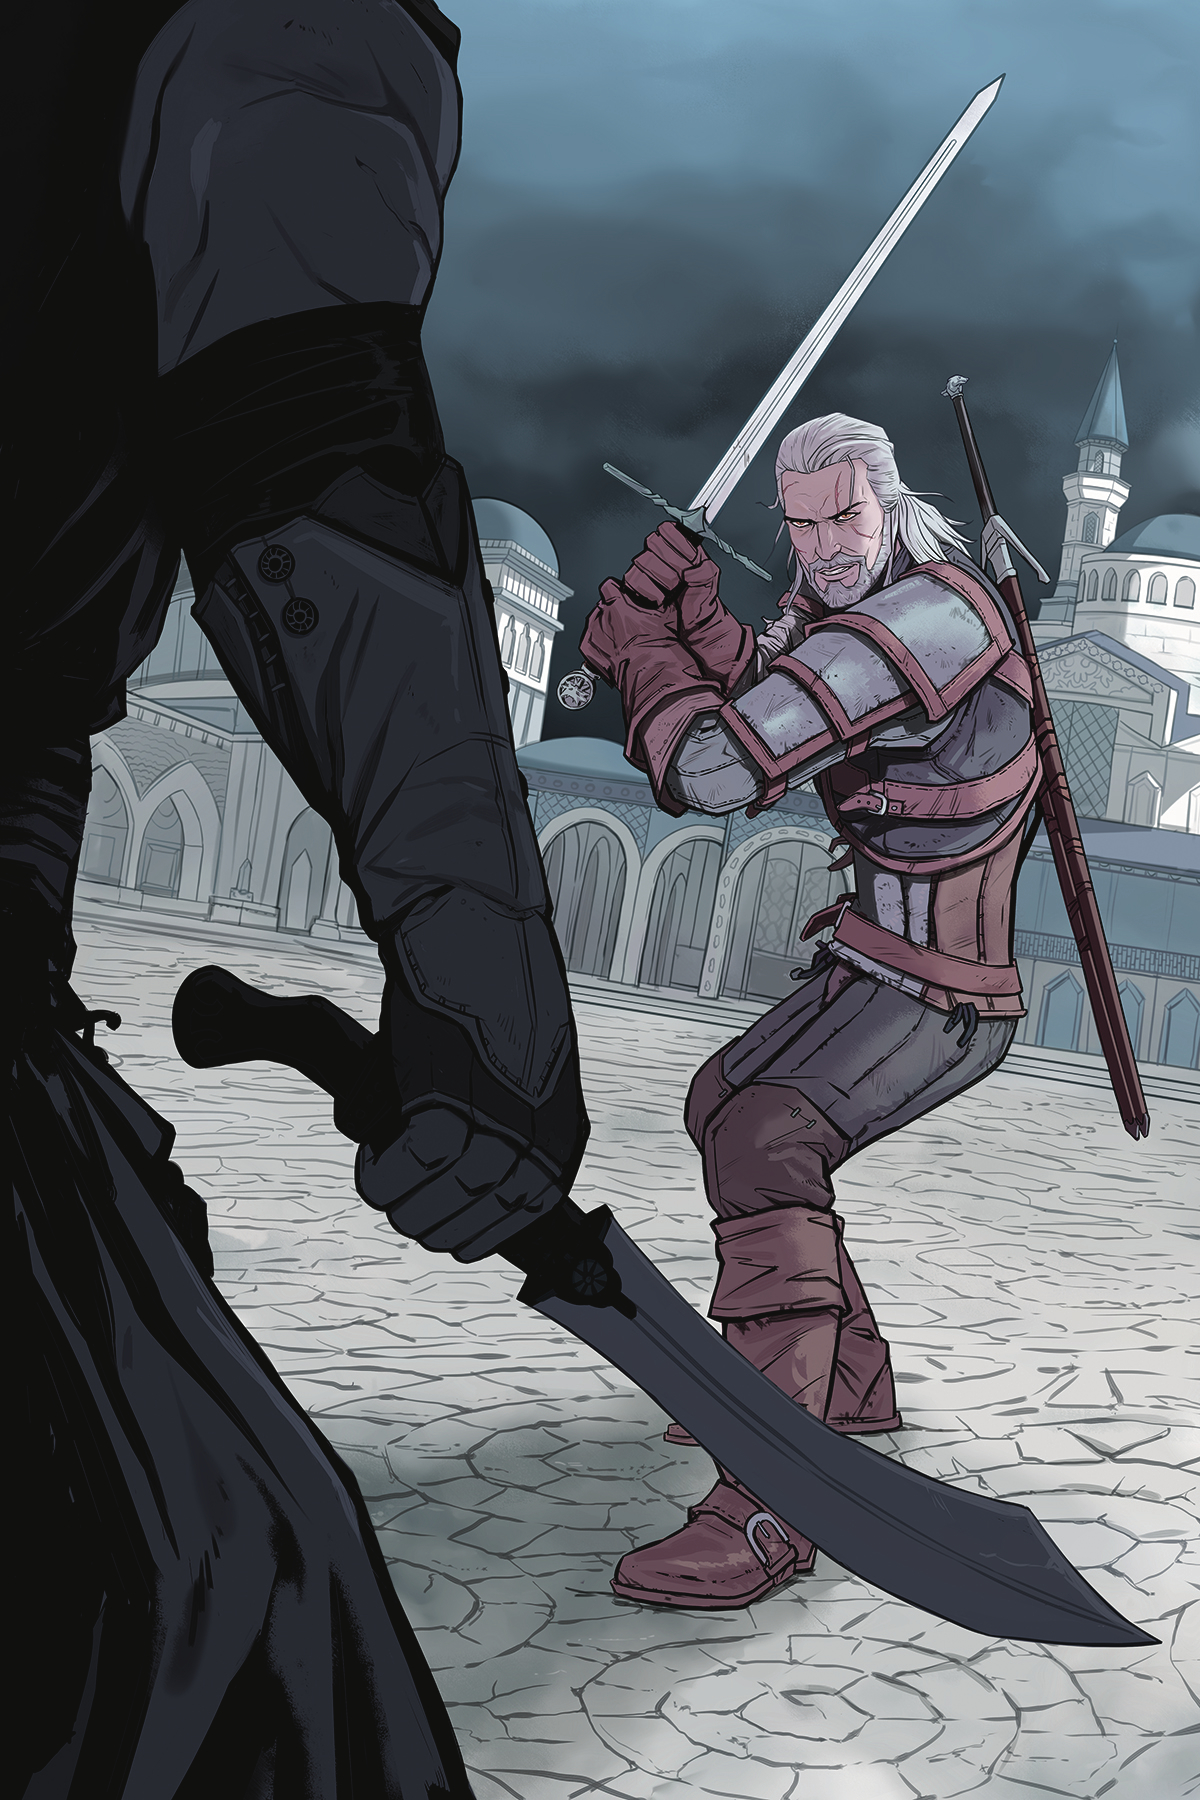 WITCHER #2 OF FLESH & FLAME